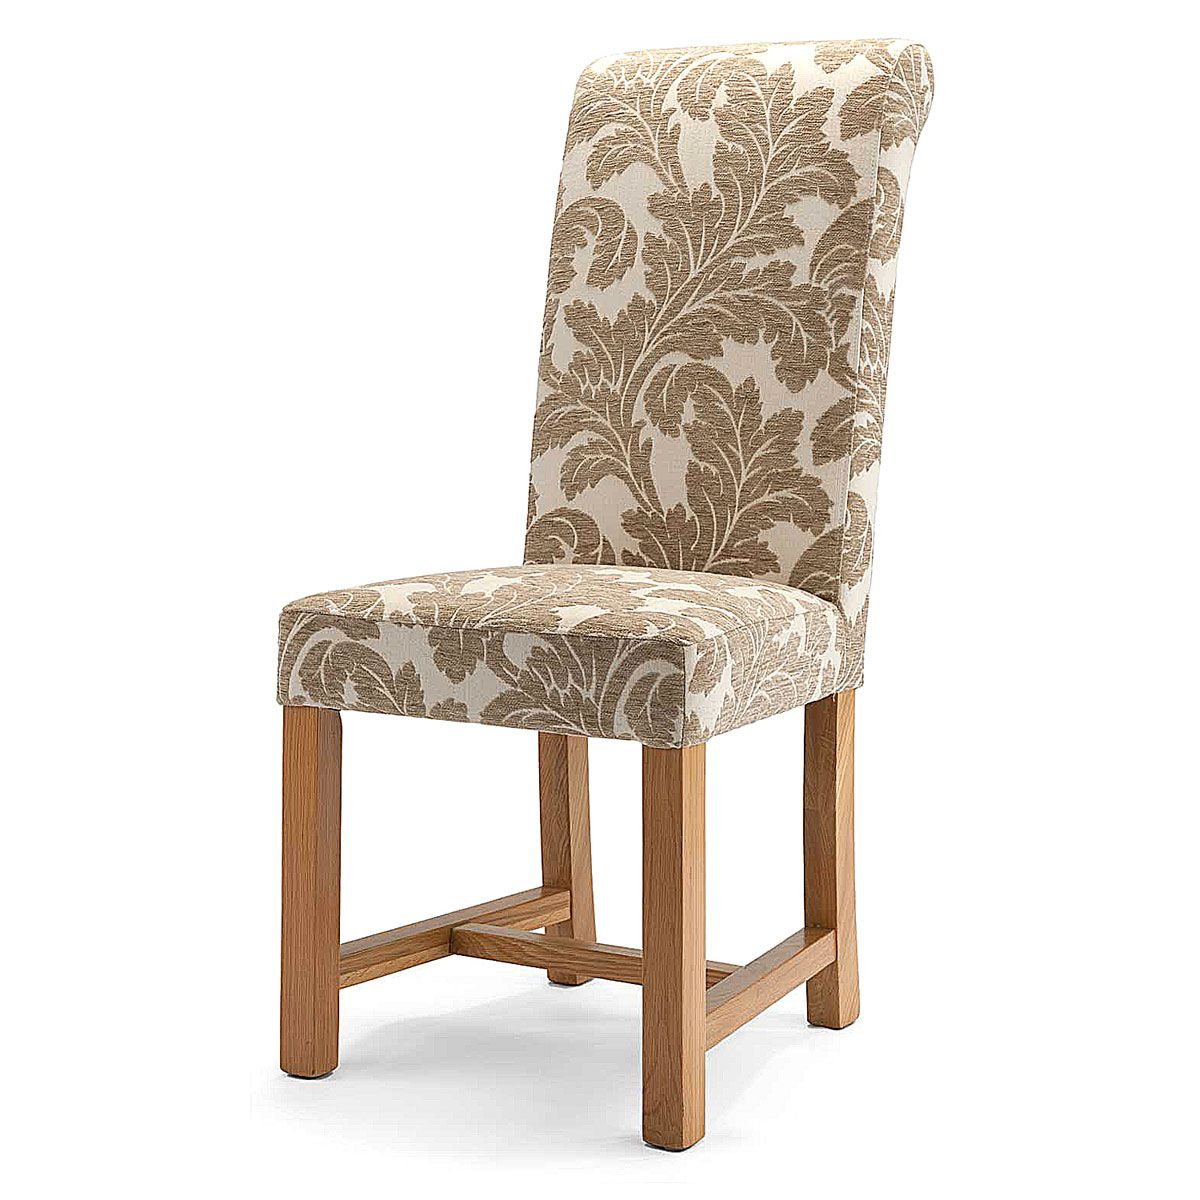 Floral Dining Room Chairs: Chicago Floral Stone Chairs: Dining Room